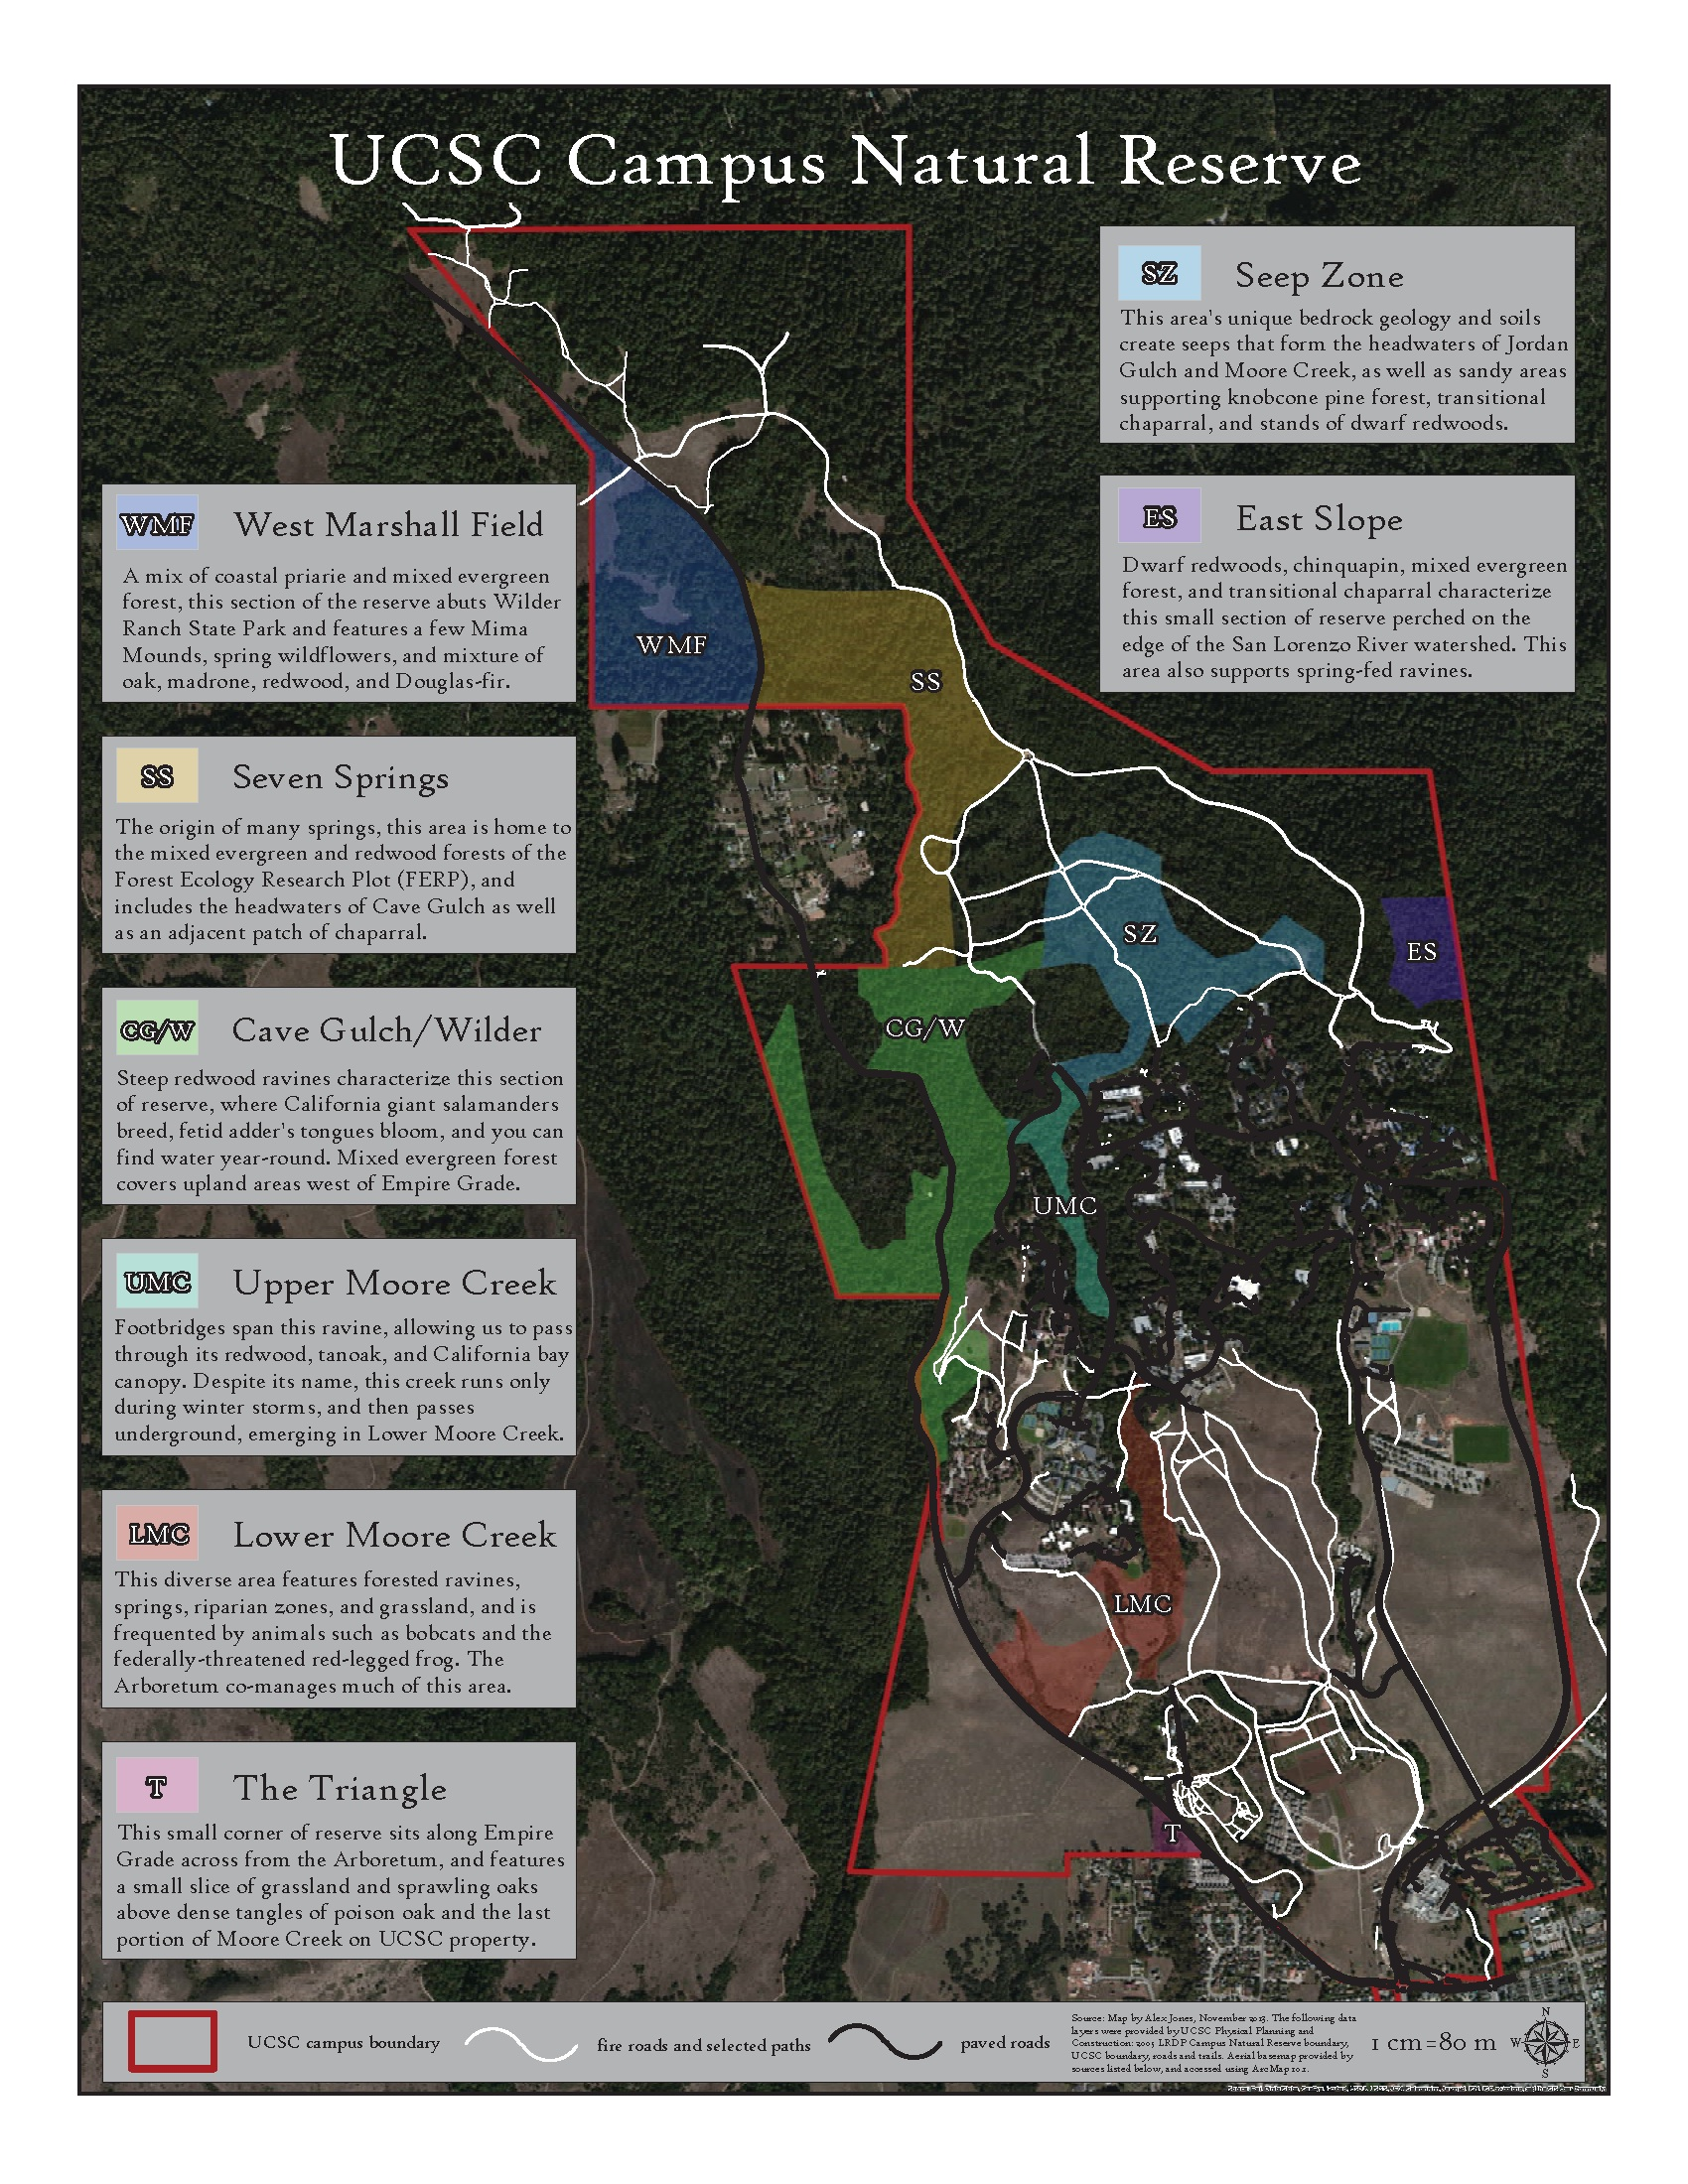 This map image details habitat sectors of the UCSC Campus Natural Reserve